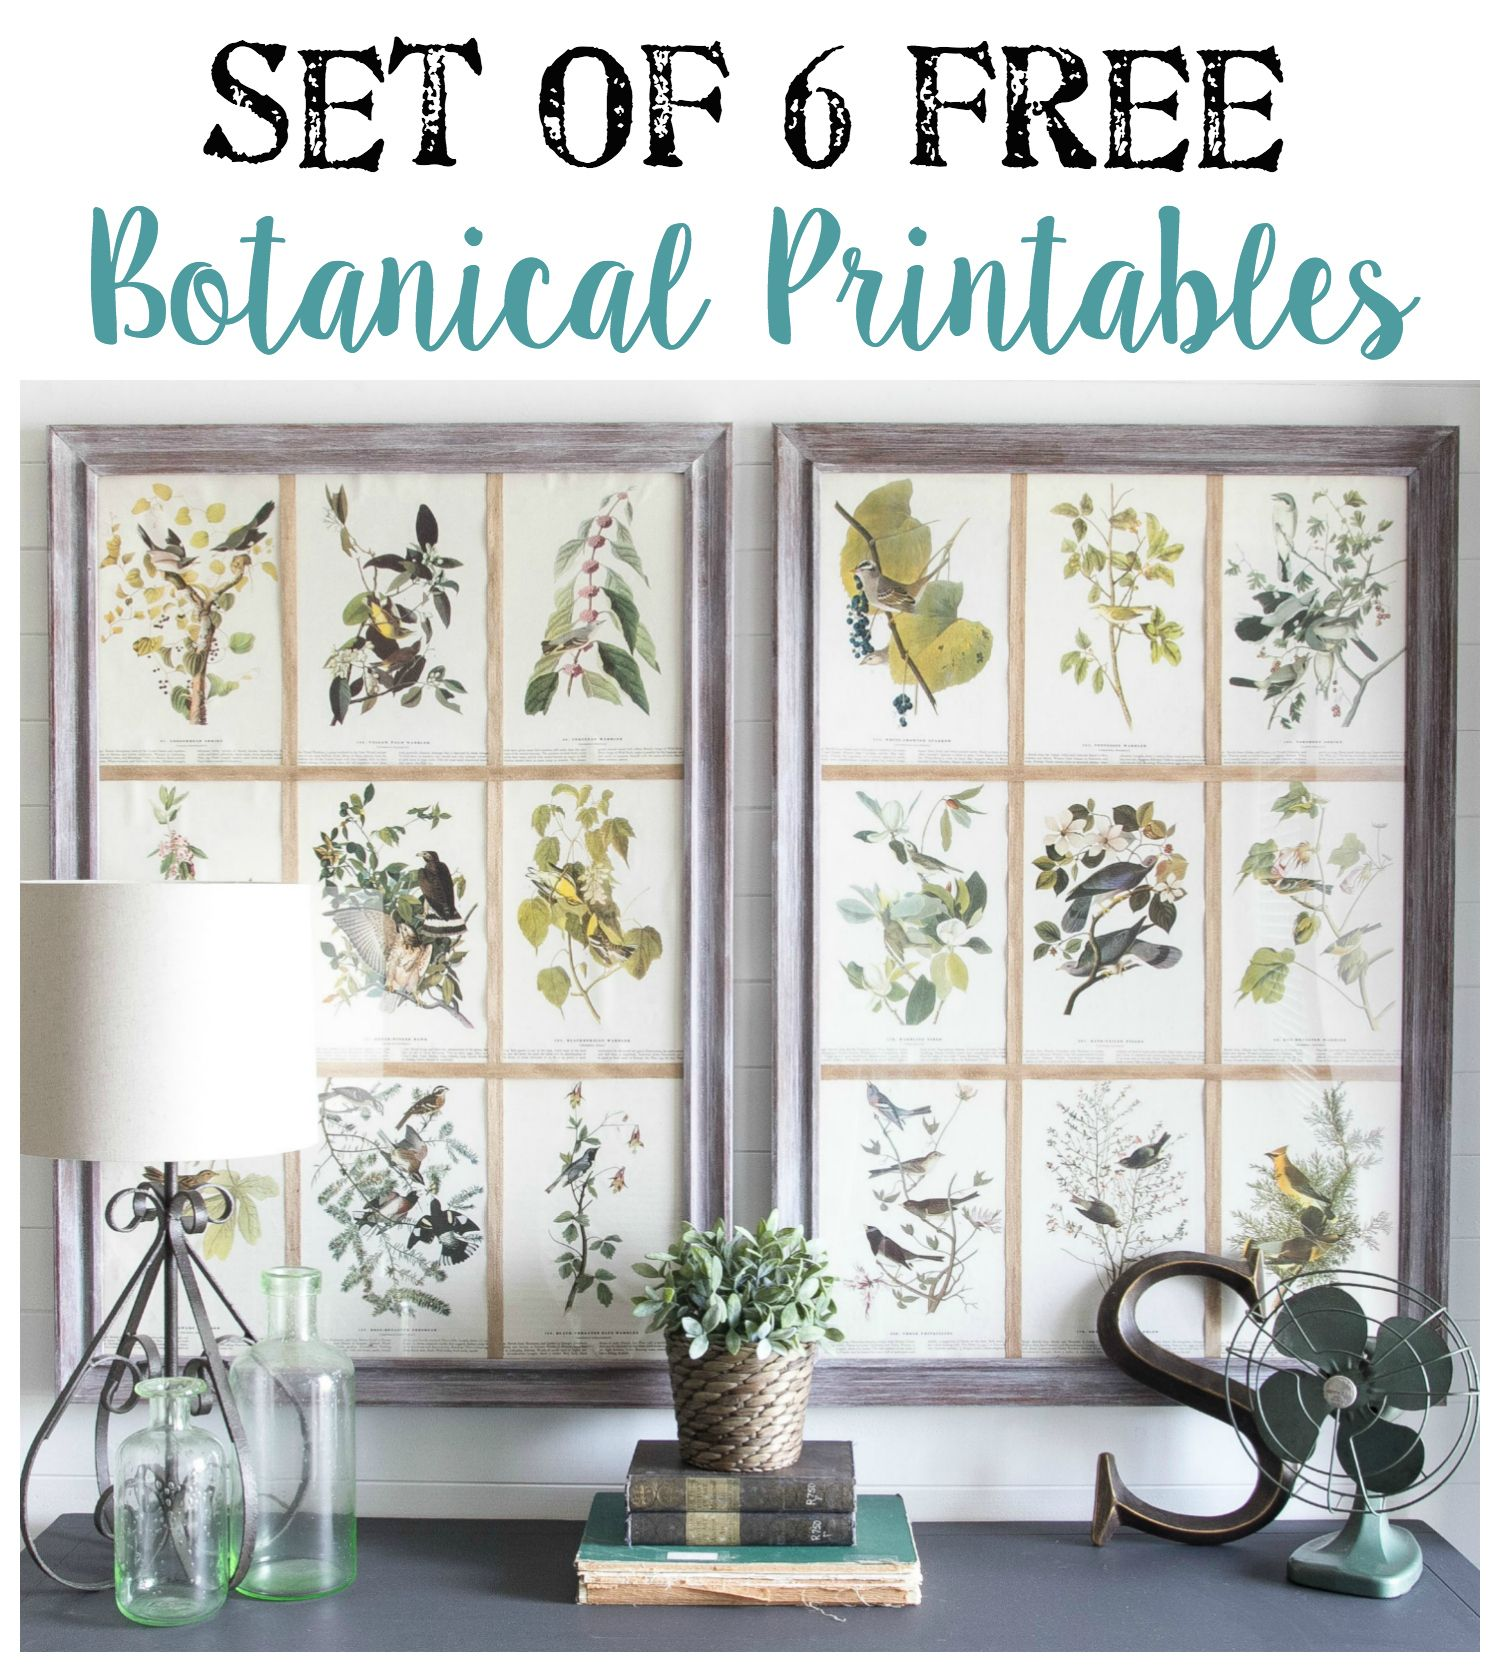 Window Picture Frame and Free Botanical Printables | Window picture ...